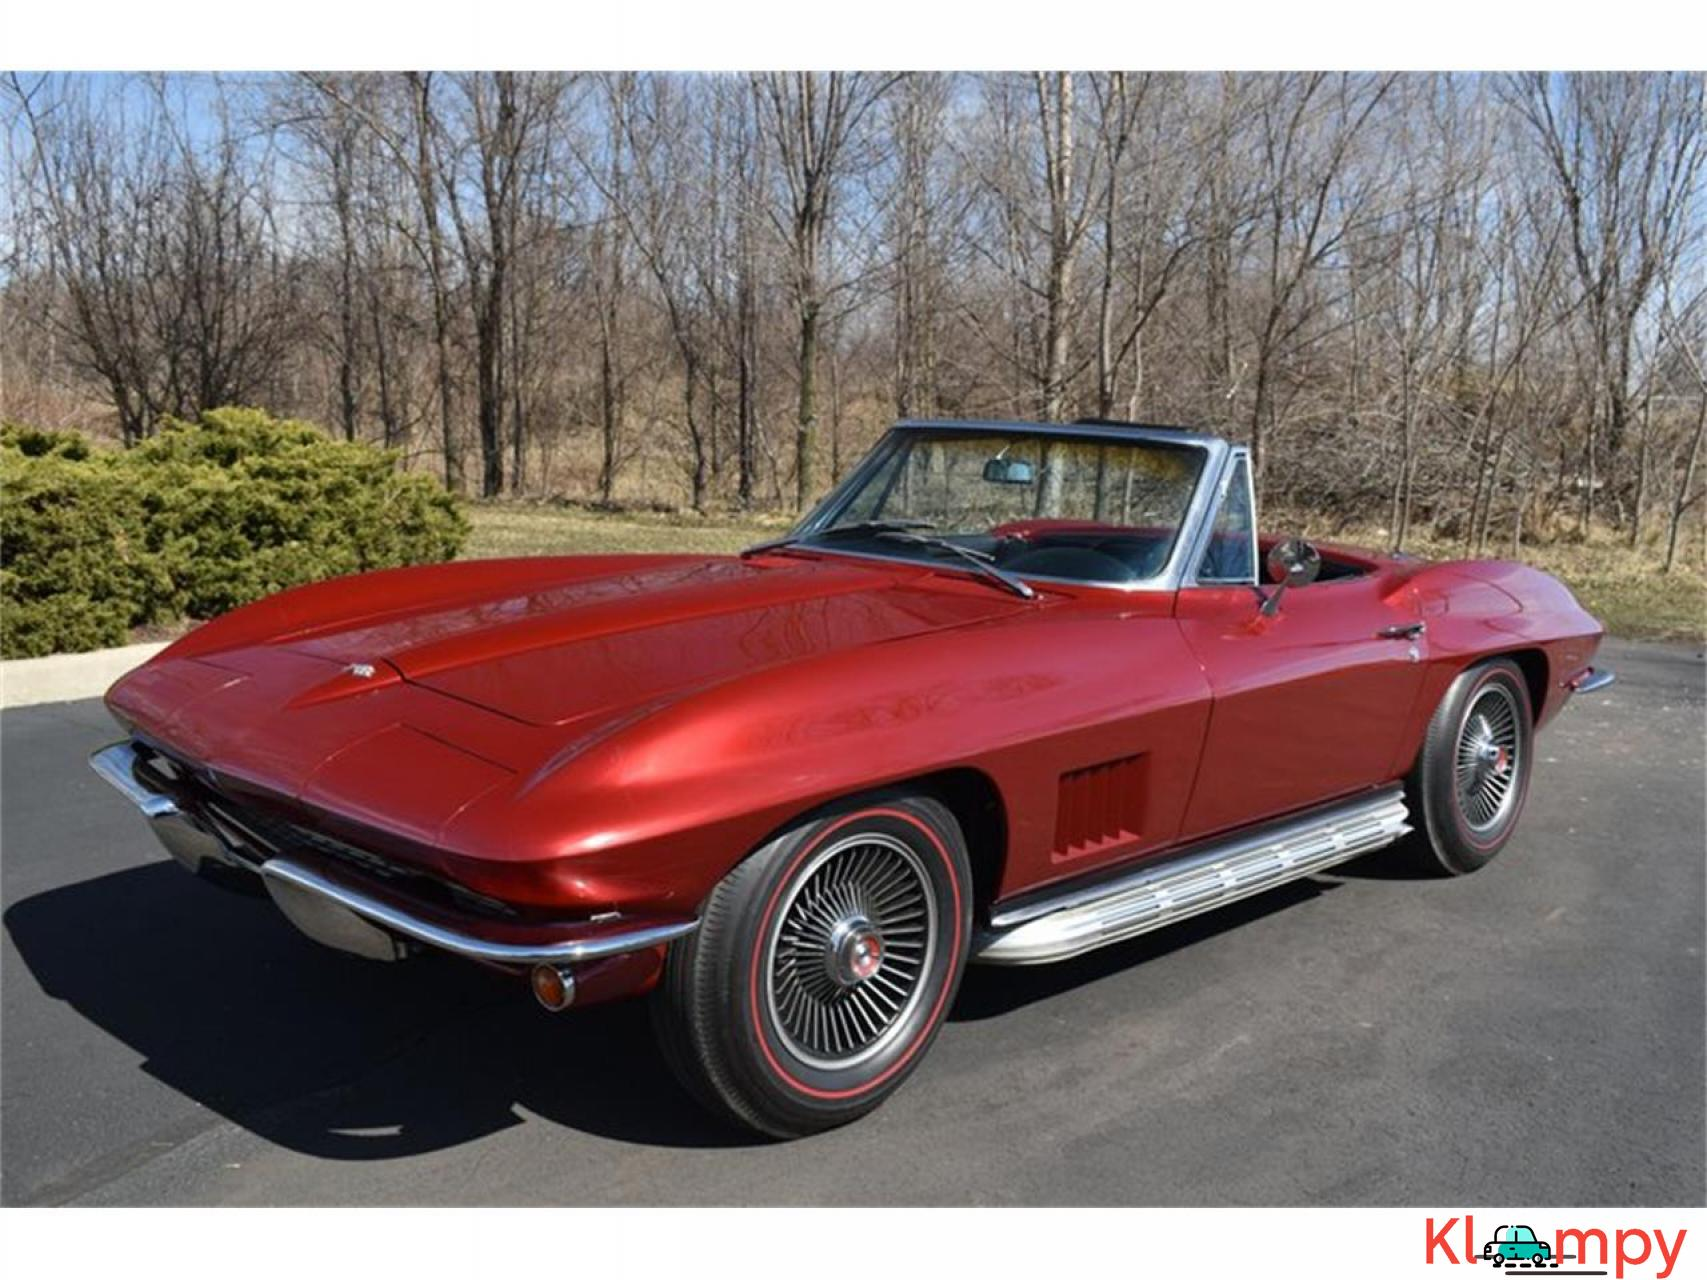 1967 Chevrolet Corvette 350HP 327 Cu In V8 - 1/20